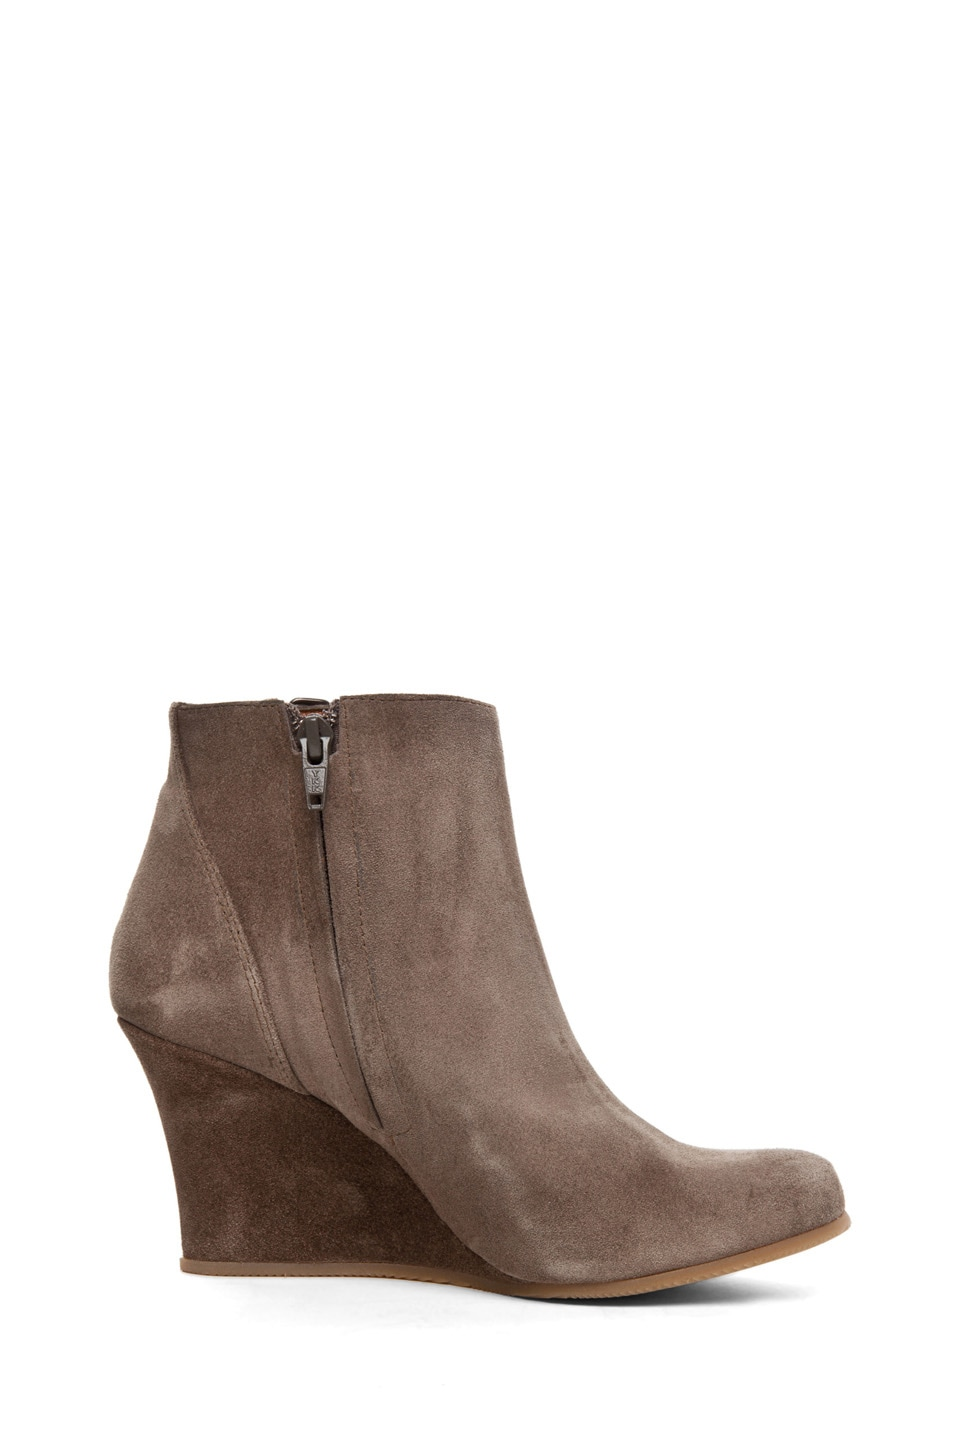 Image 5 of Lanvin Wedge Bootie in Taupe